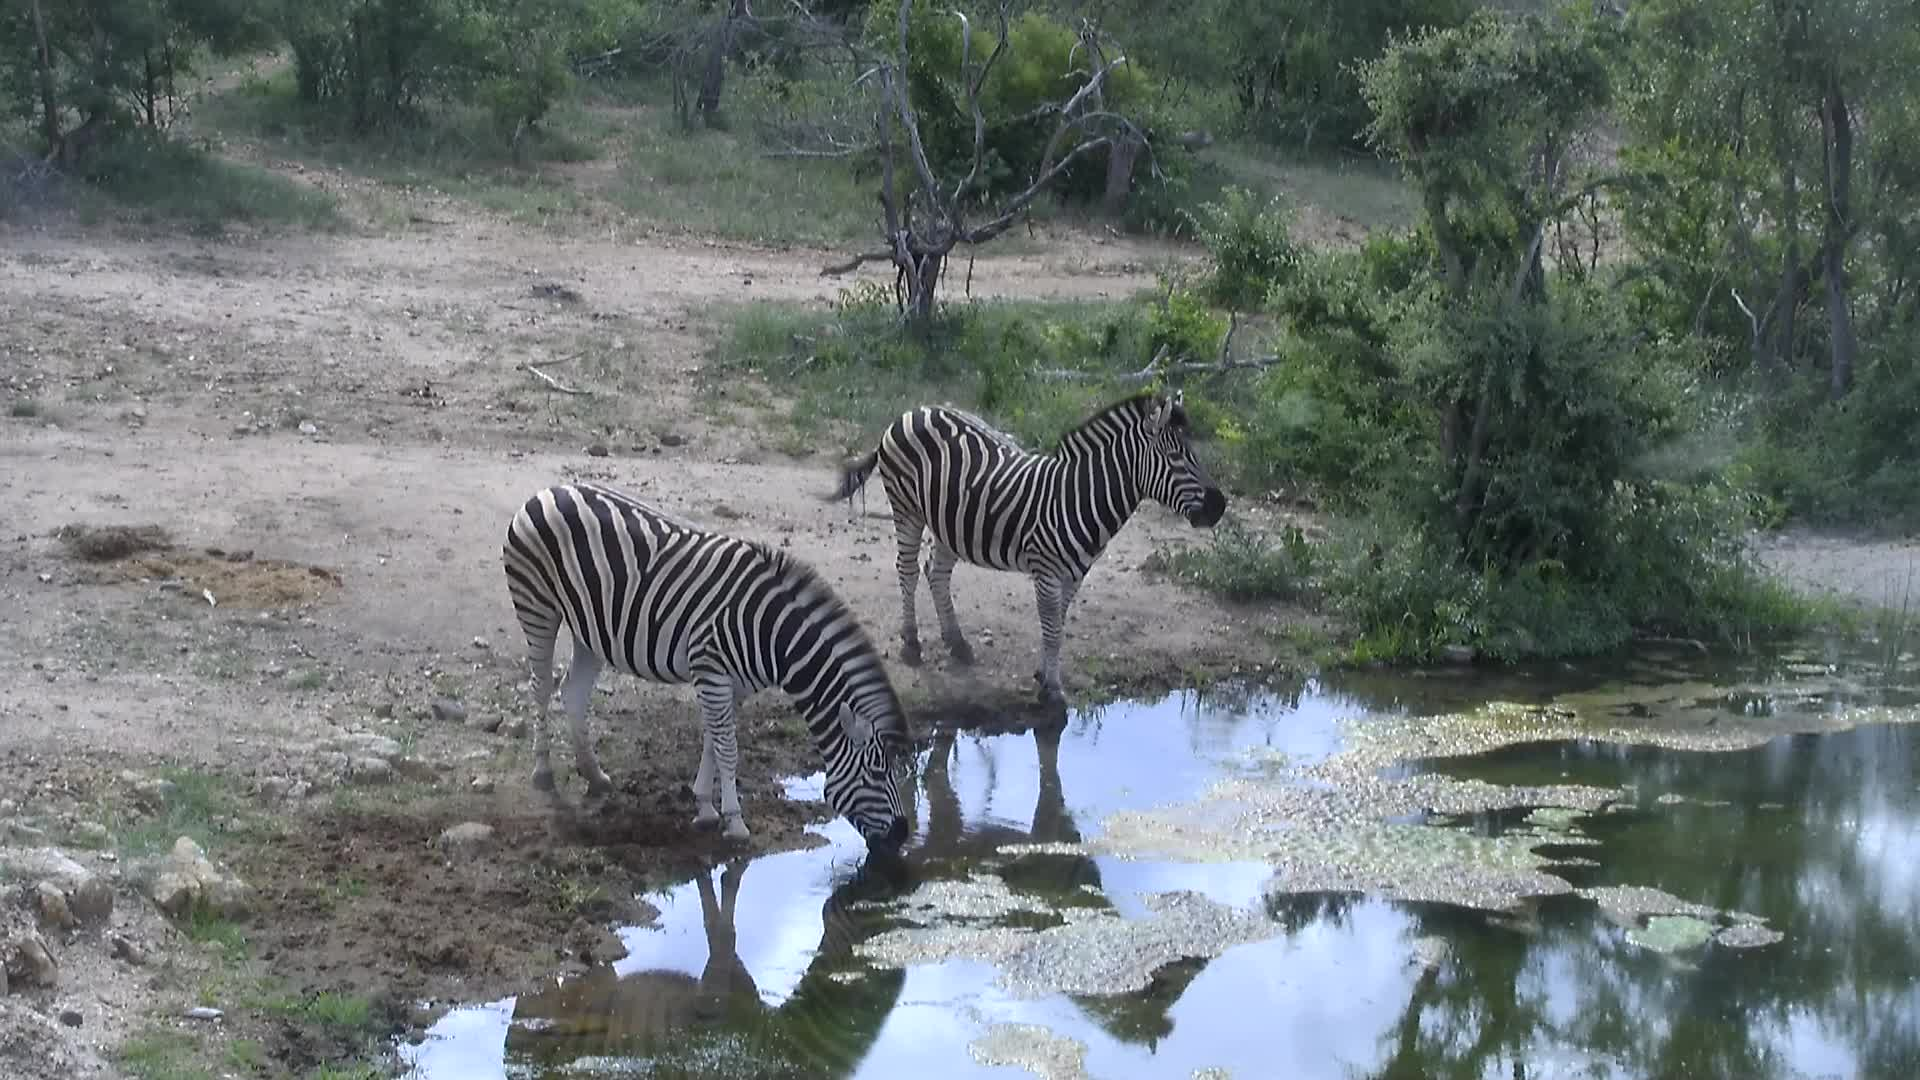 VIDEO: Zebra at the waterhole